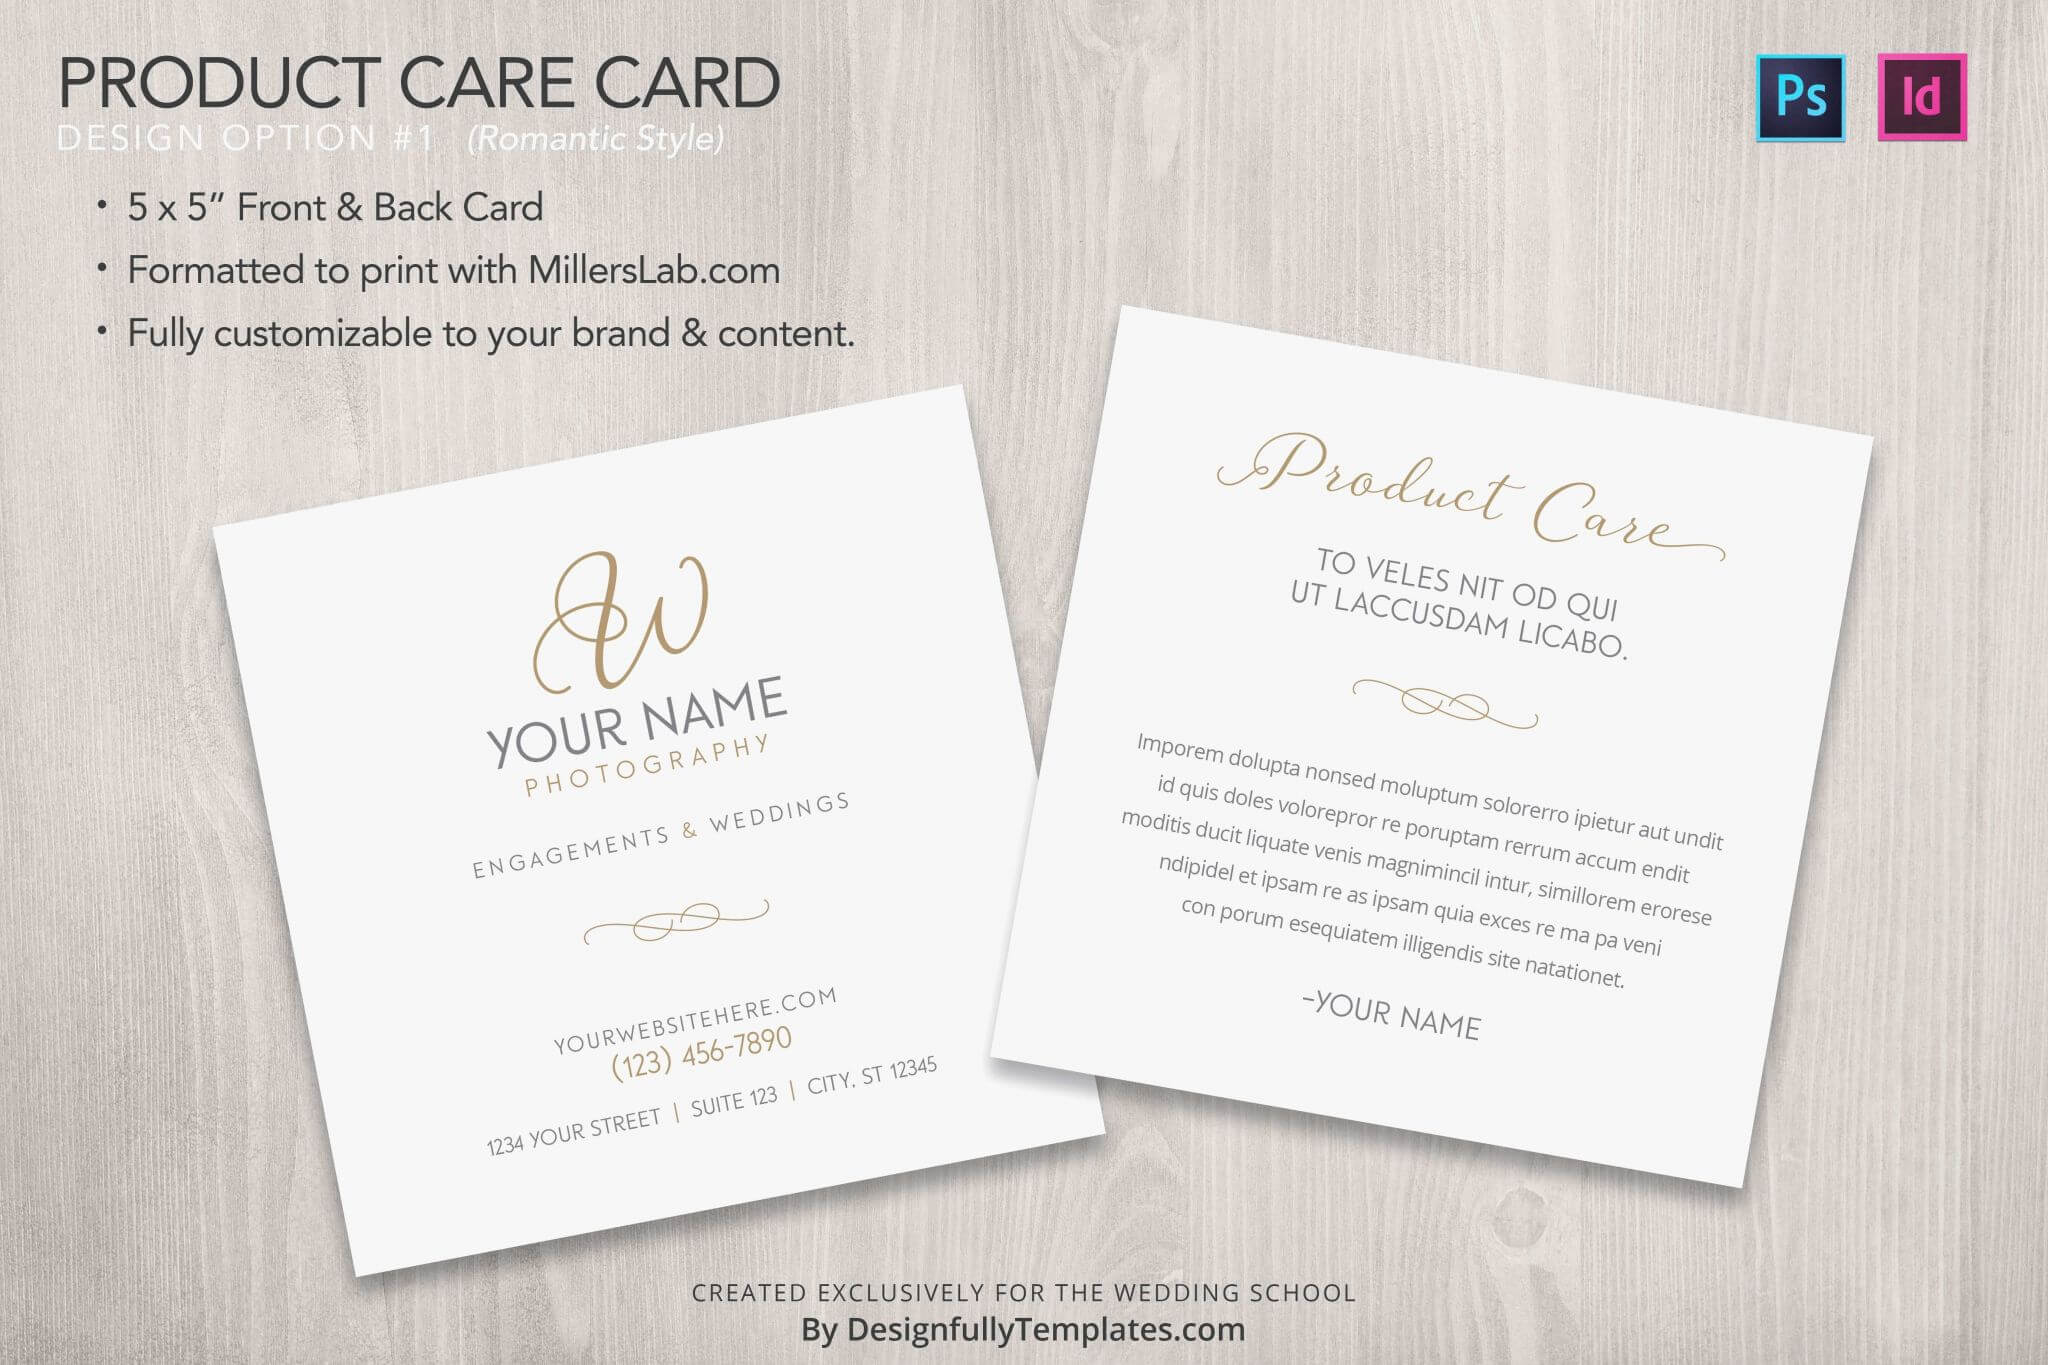 Place Card Template 6 Per Sheet | Glendale Community Throughout Place Card Template Free 6 Per Page